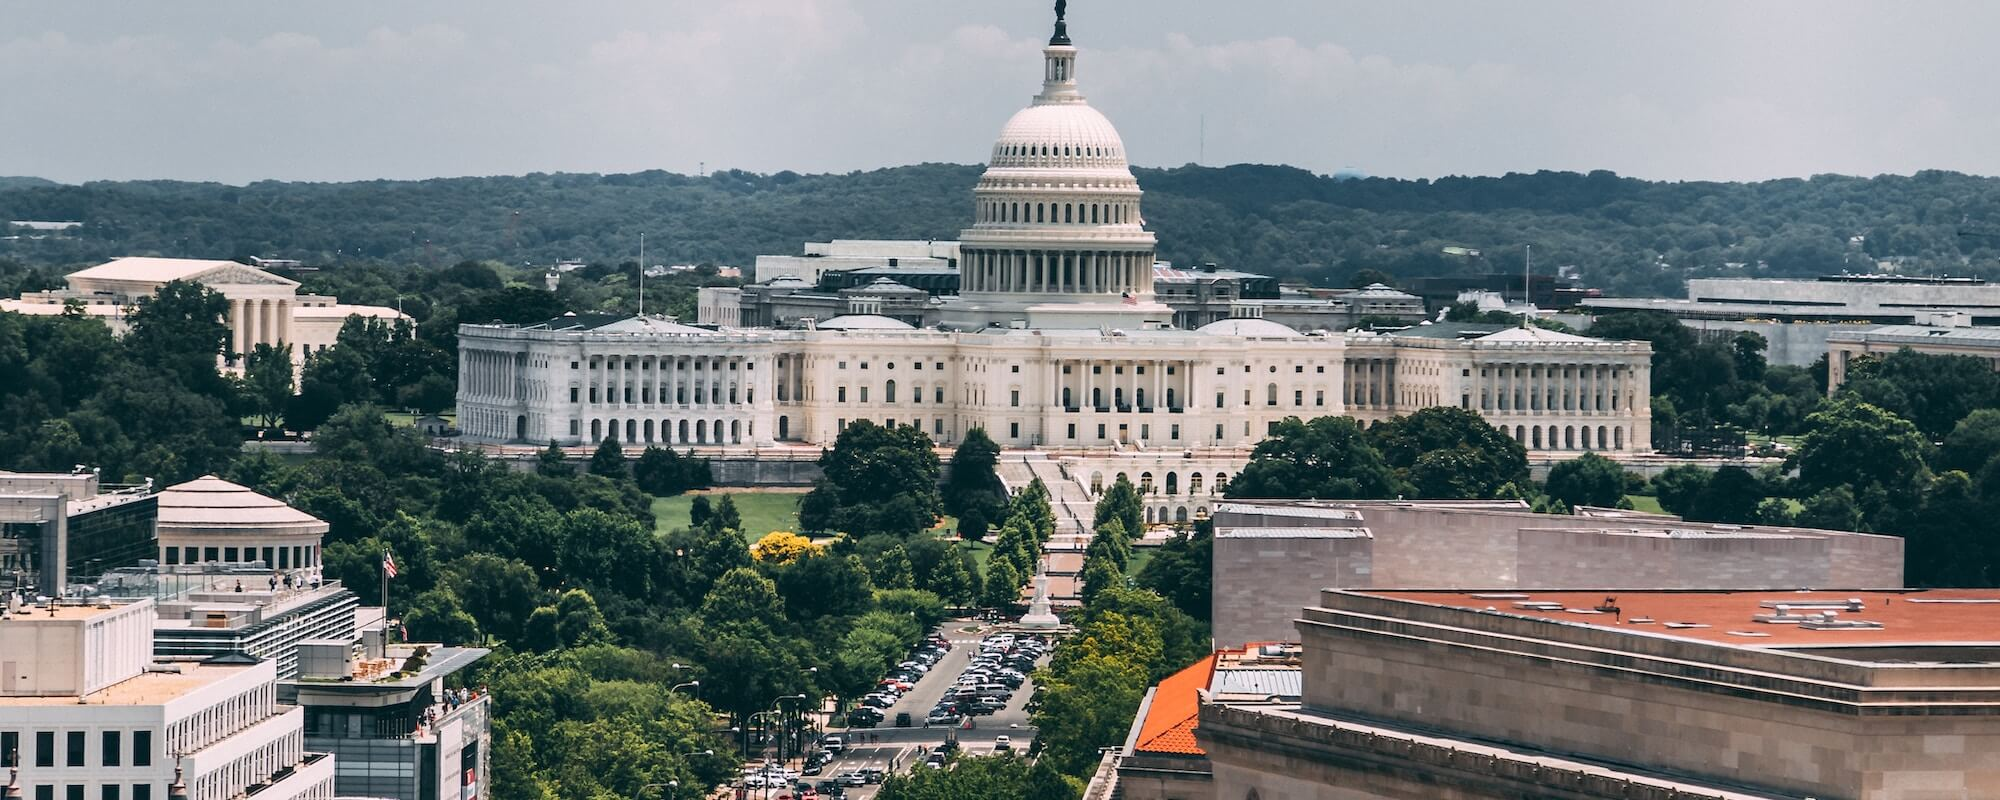 U.S. Government Continues to Pave the Way for Robotic Process Automation